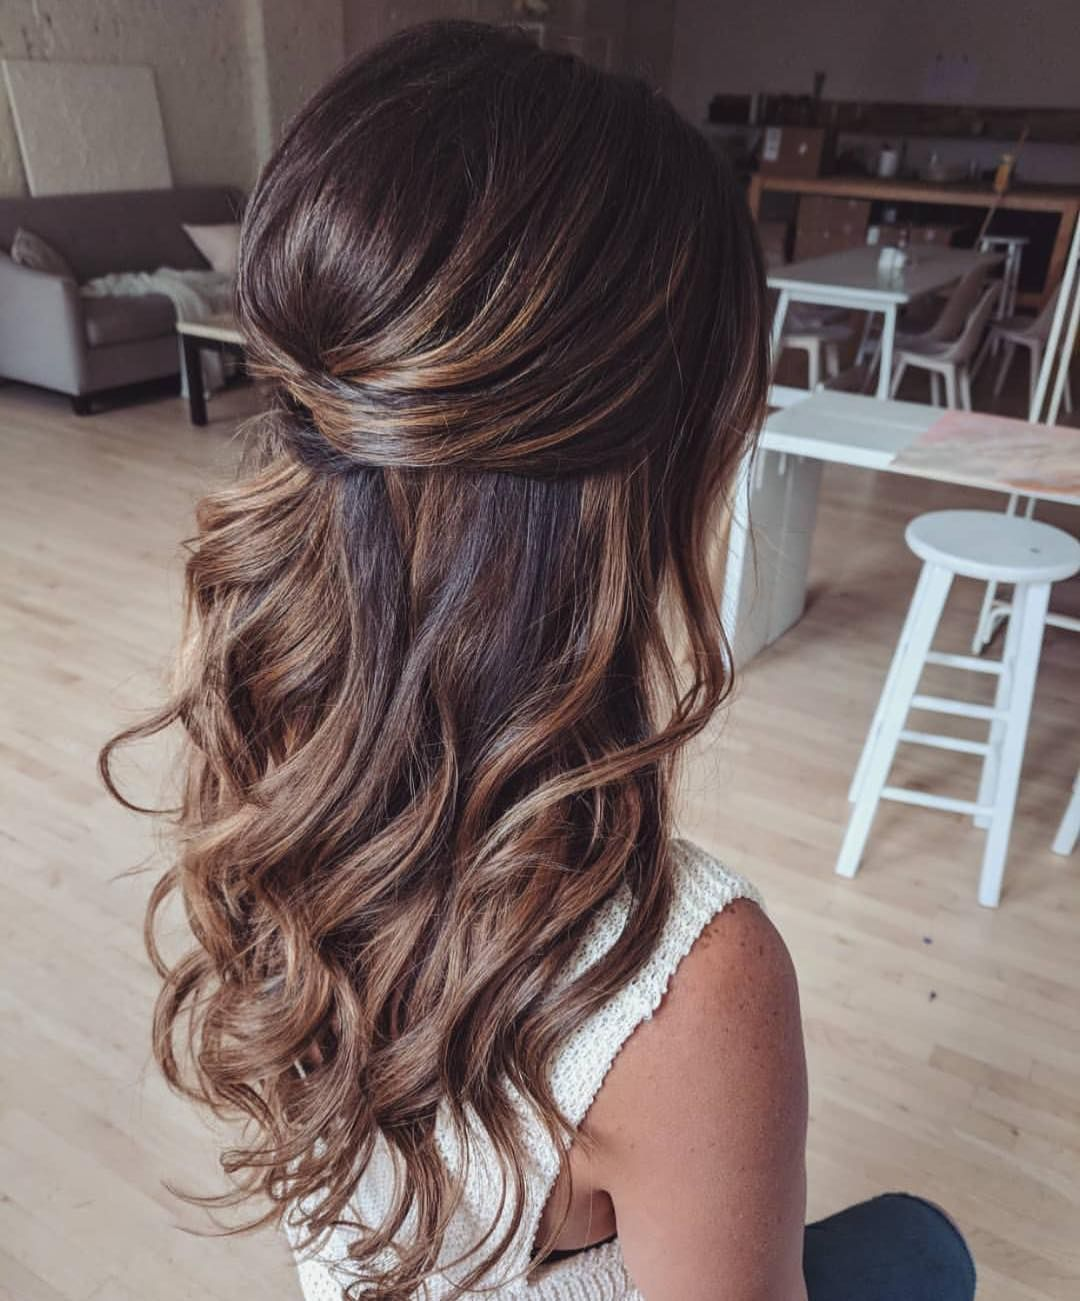 49 Gorgeous Half Up Half Down Hairstyles Long Hair Styles Down Hairstyles Long Hair Extensions